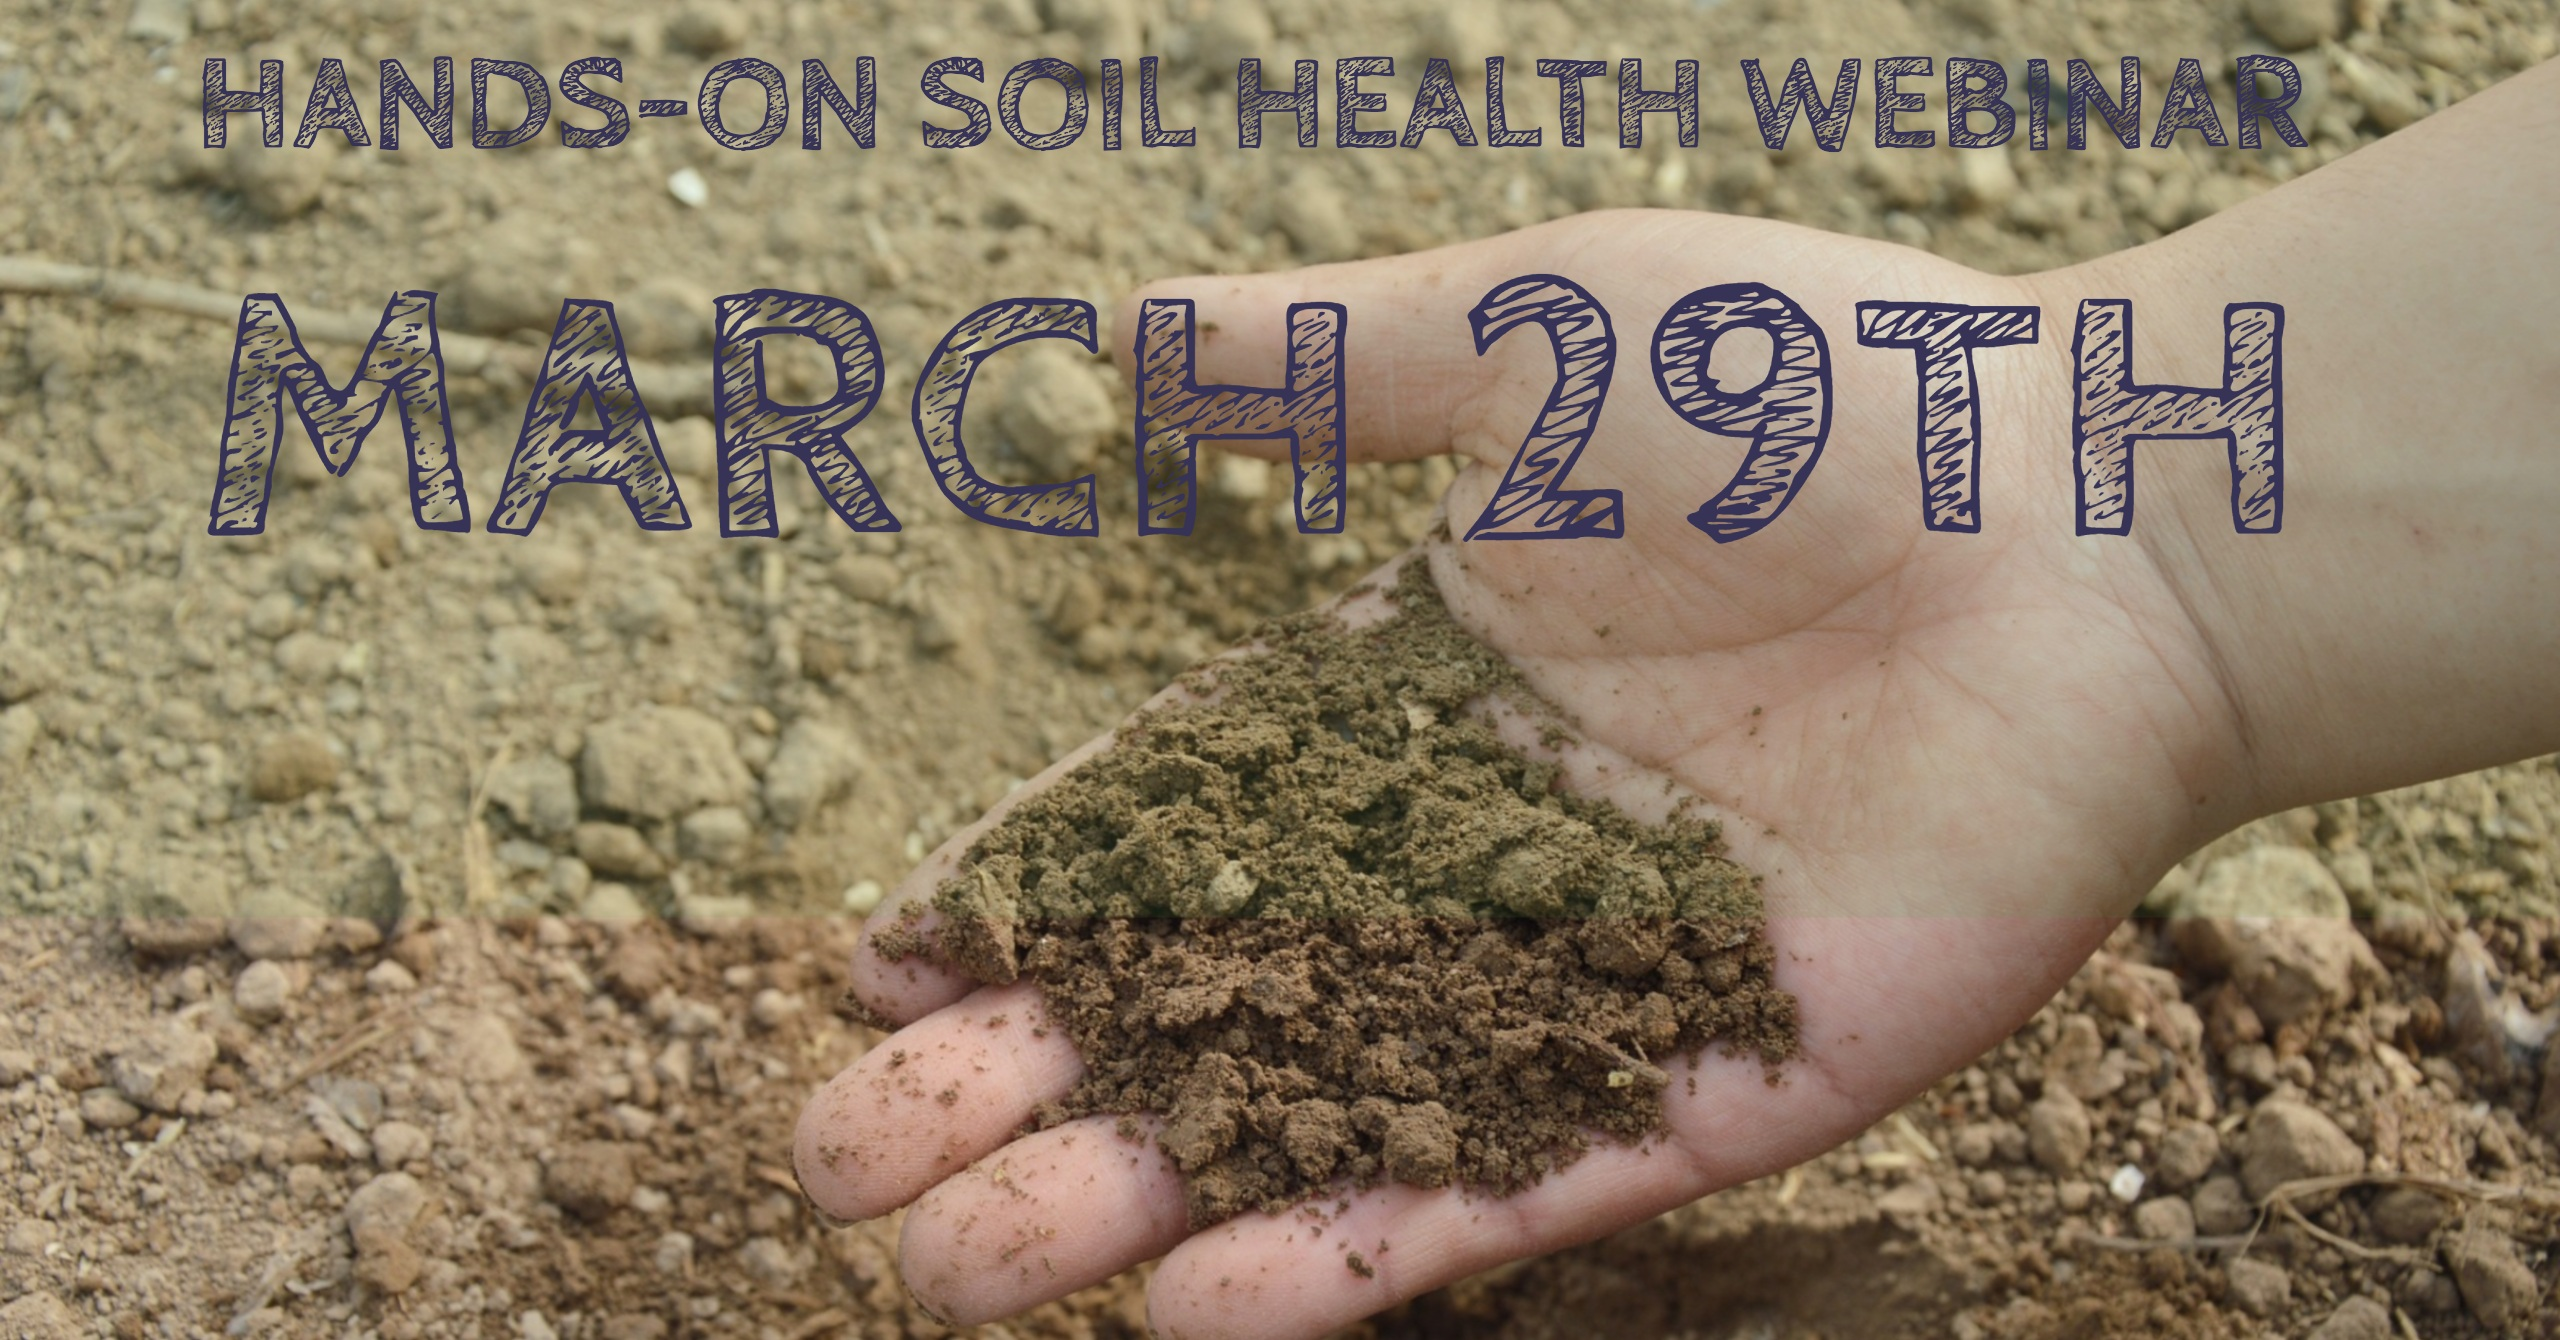 Hands-On Soil Health WEBINAR